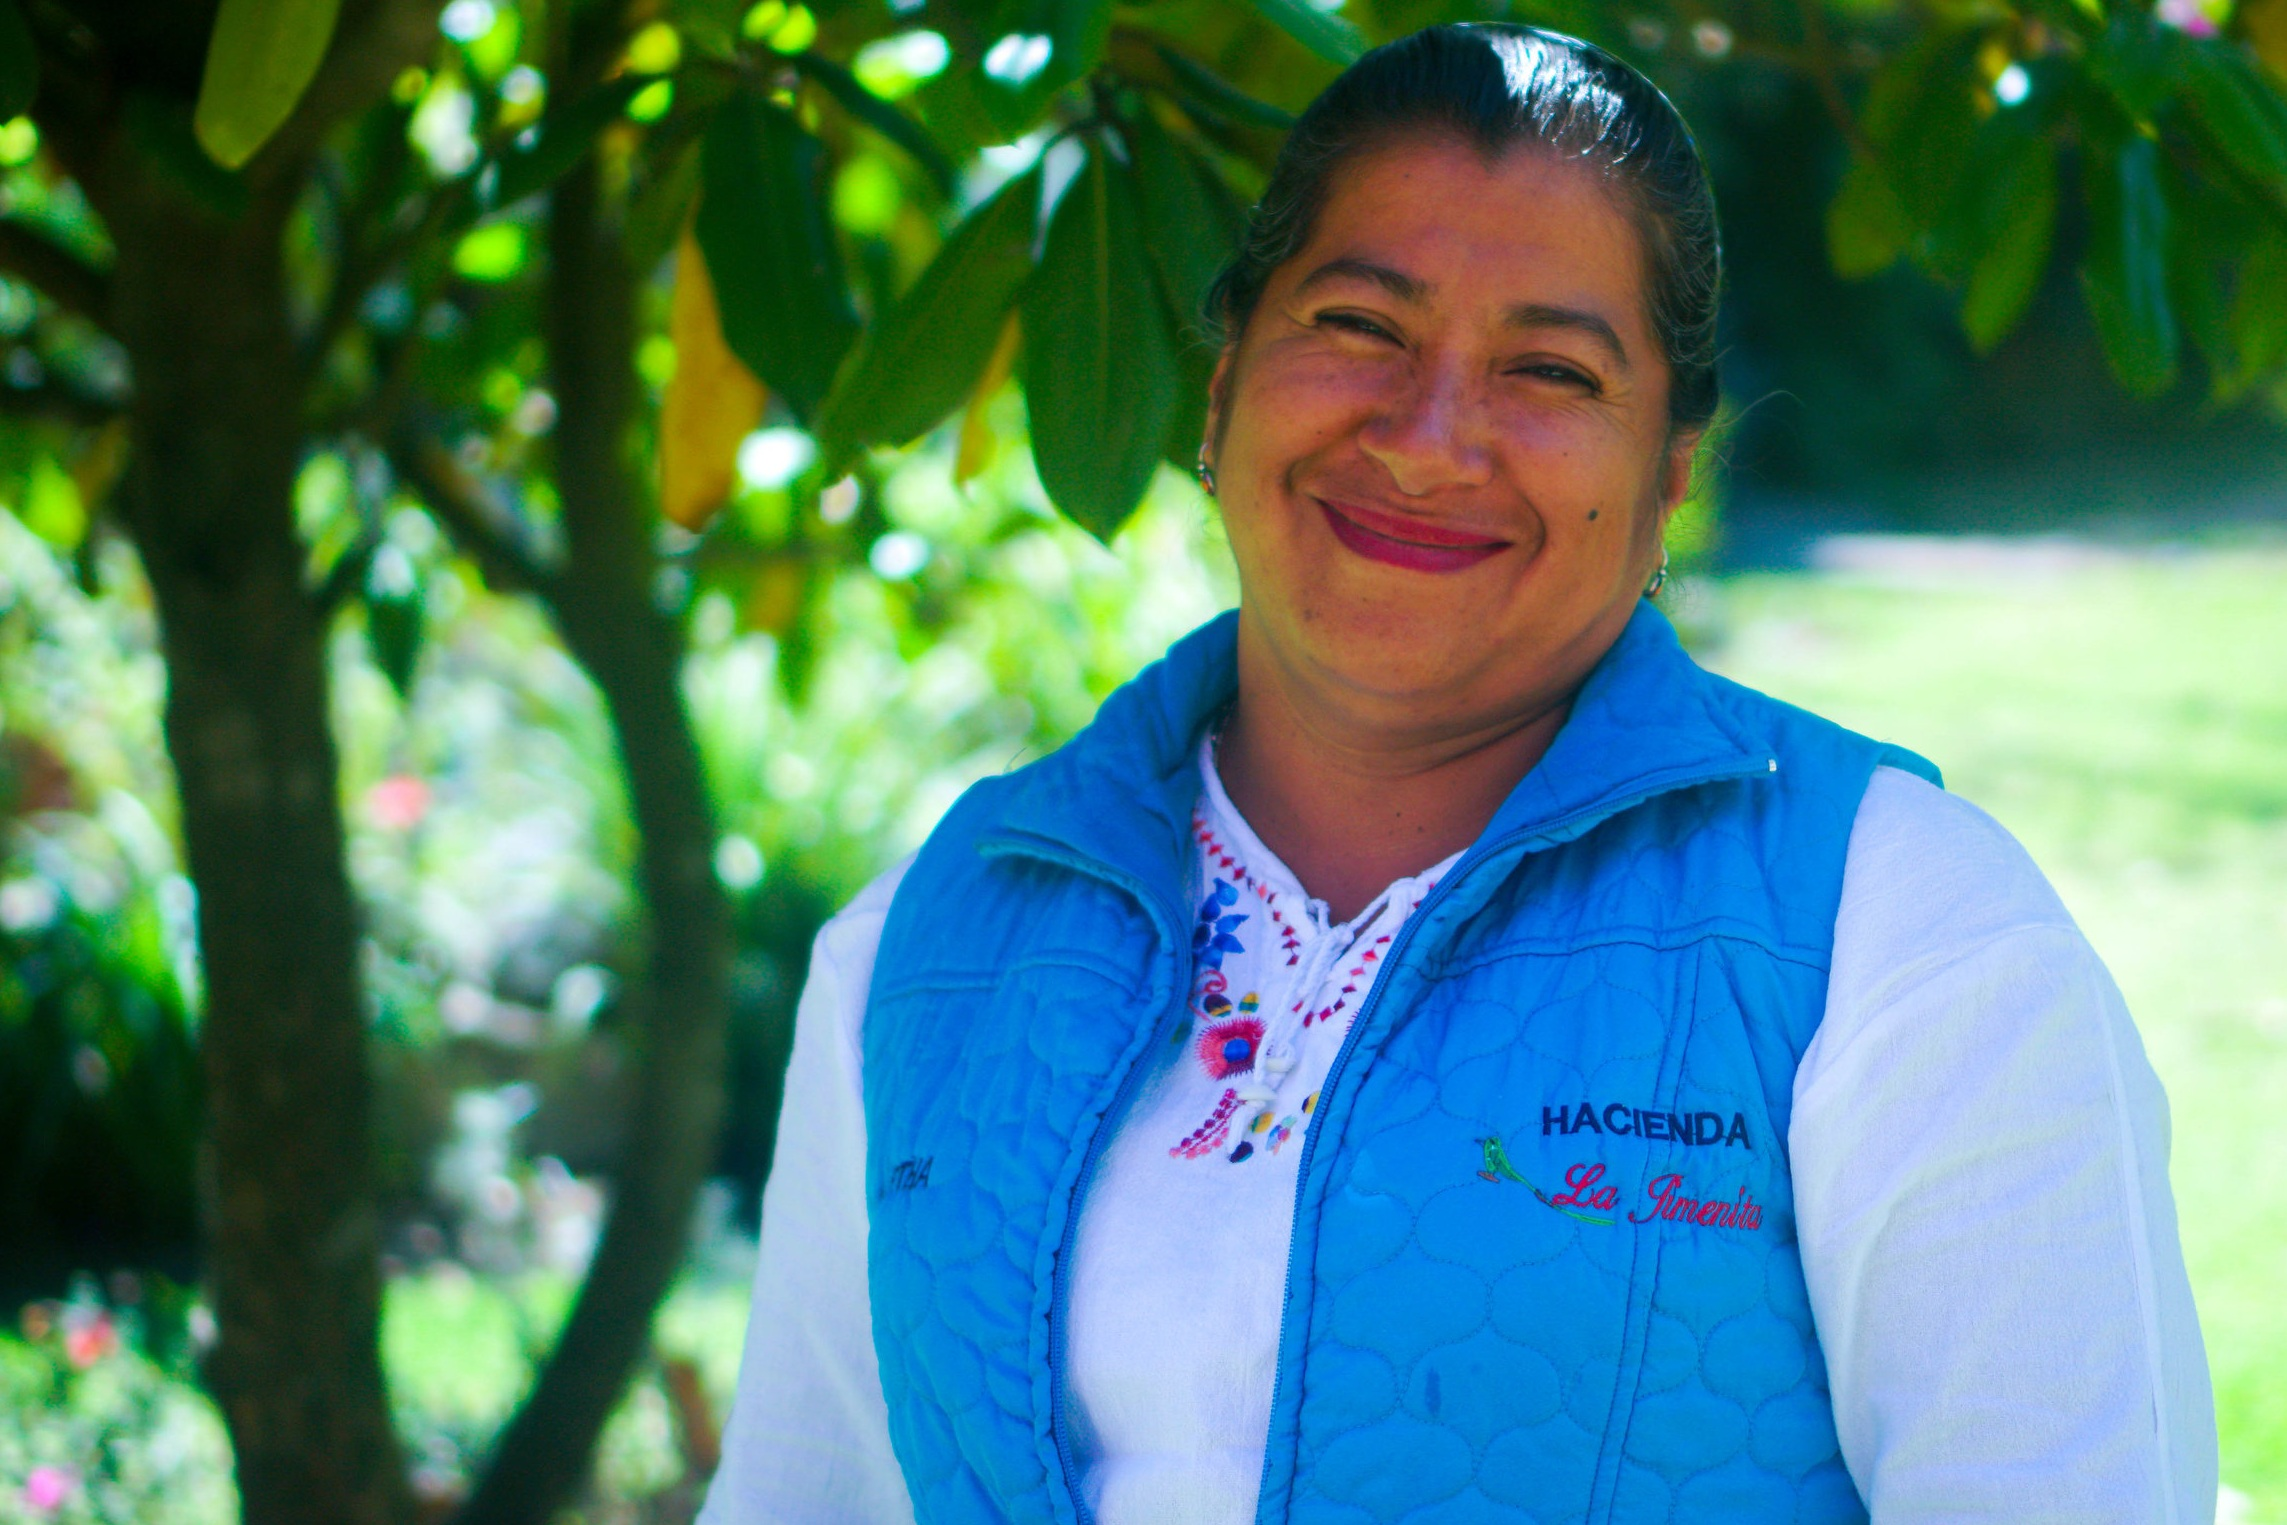 Martha Gonzaga - Born the 7 of April in Urcuqui-Imbabura in the northen province of Ecuador, raised in the country side where she learned the values of protecting the land and live in harmony with the environment. She got married at the age of 19 and is a devoted wife and mother of 3 kids of 23, 19 and 12. She has been working at the hospitality business for 7 years, and she looks after all the guests, making sure you always have a smile.